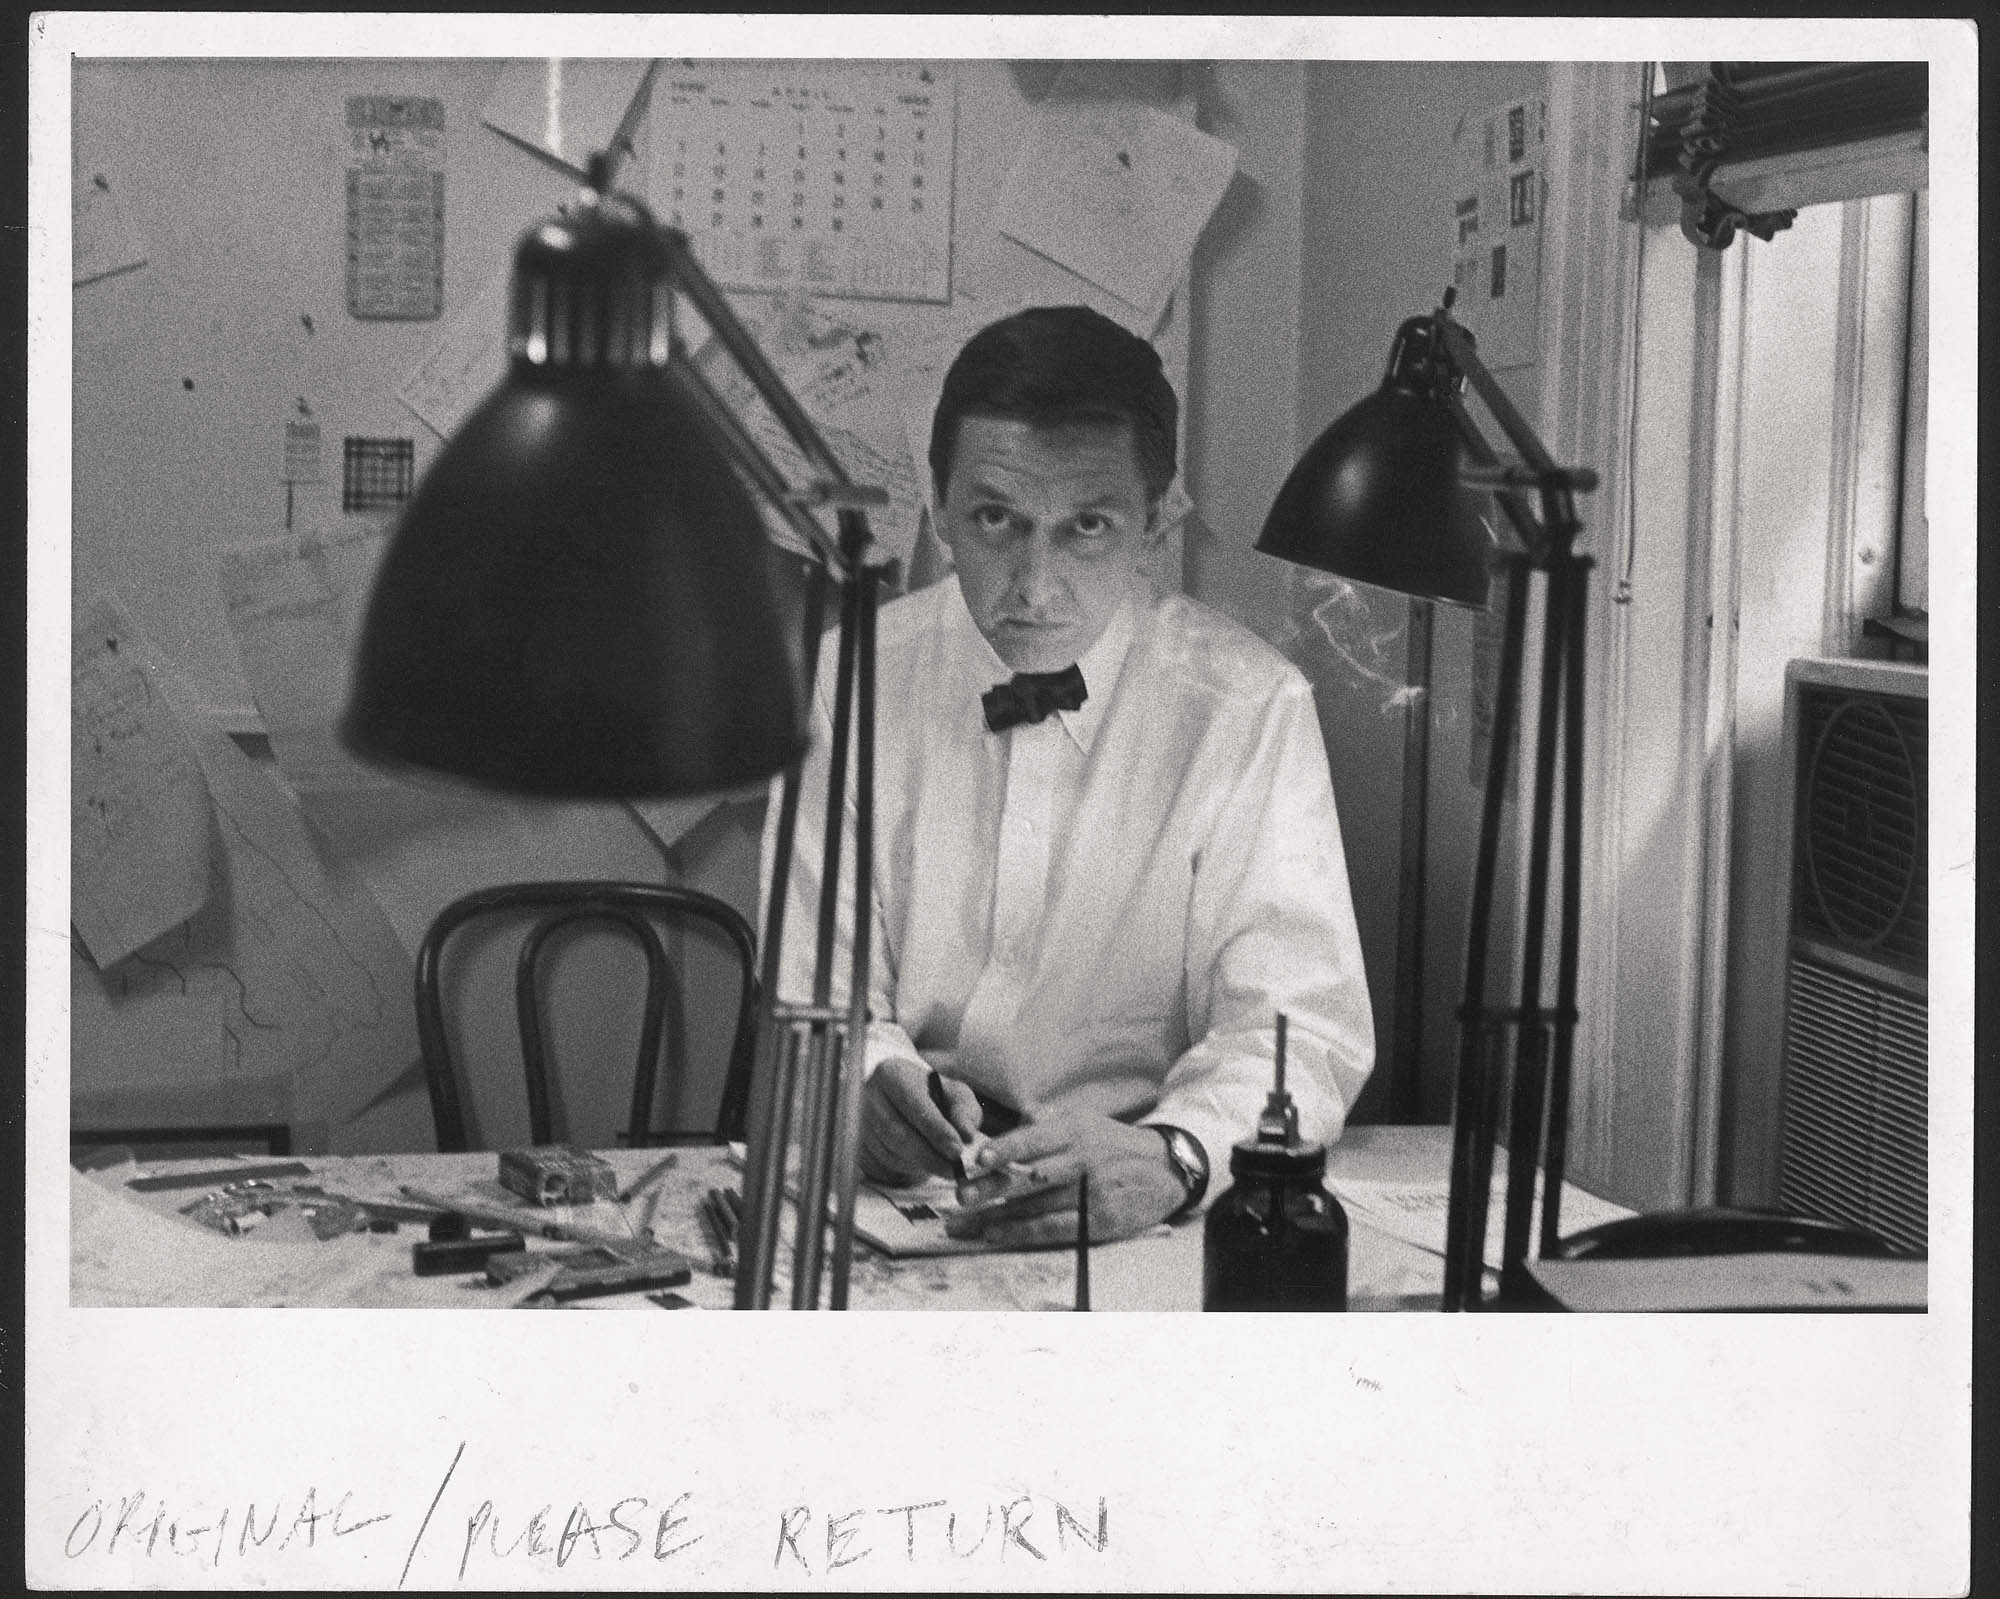 BJ at desk with lamp New York 1958